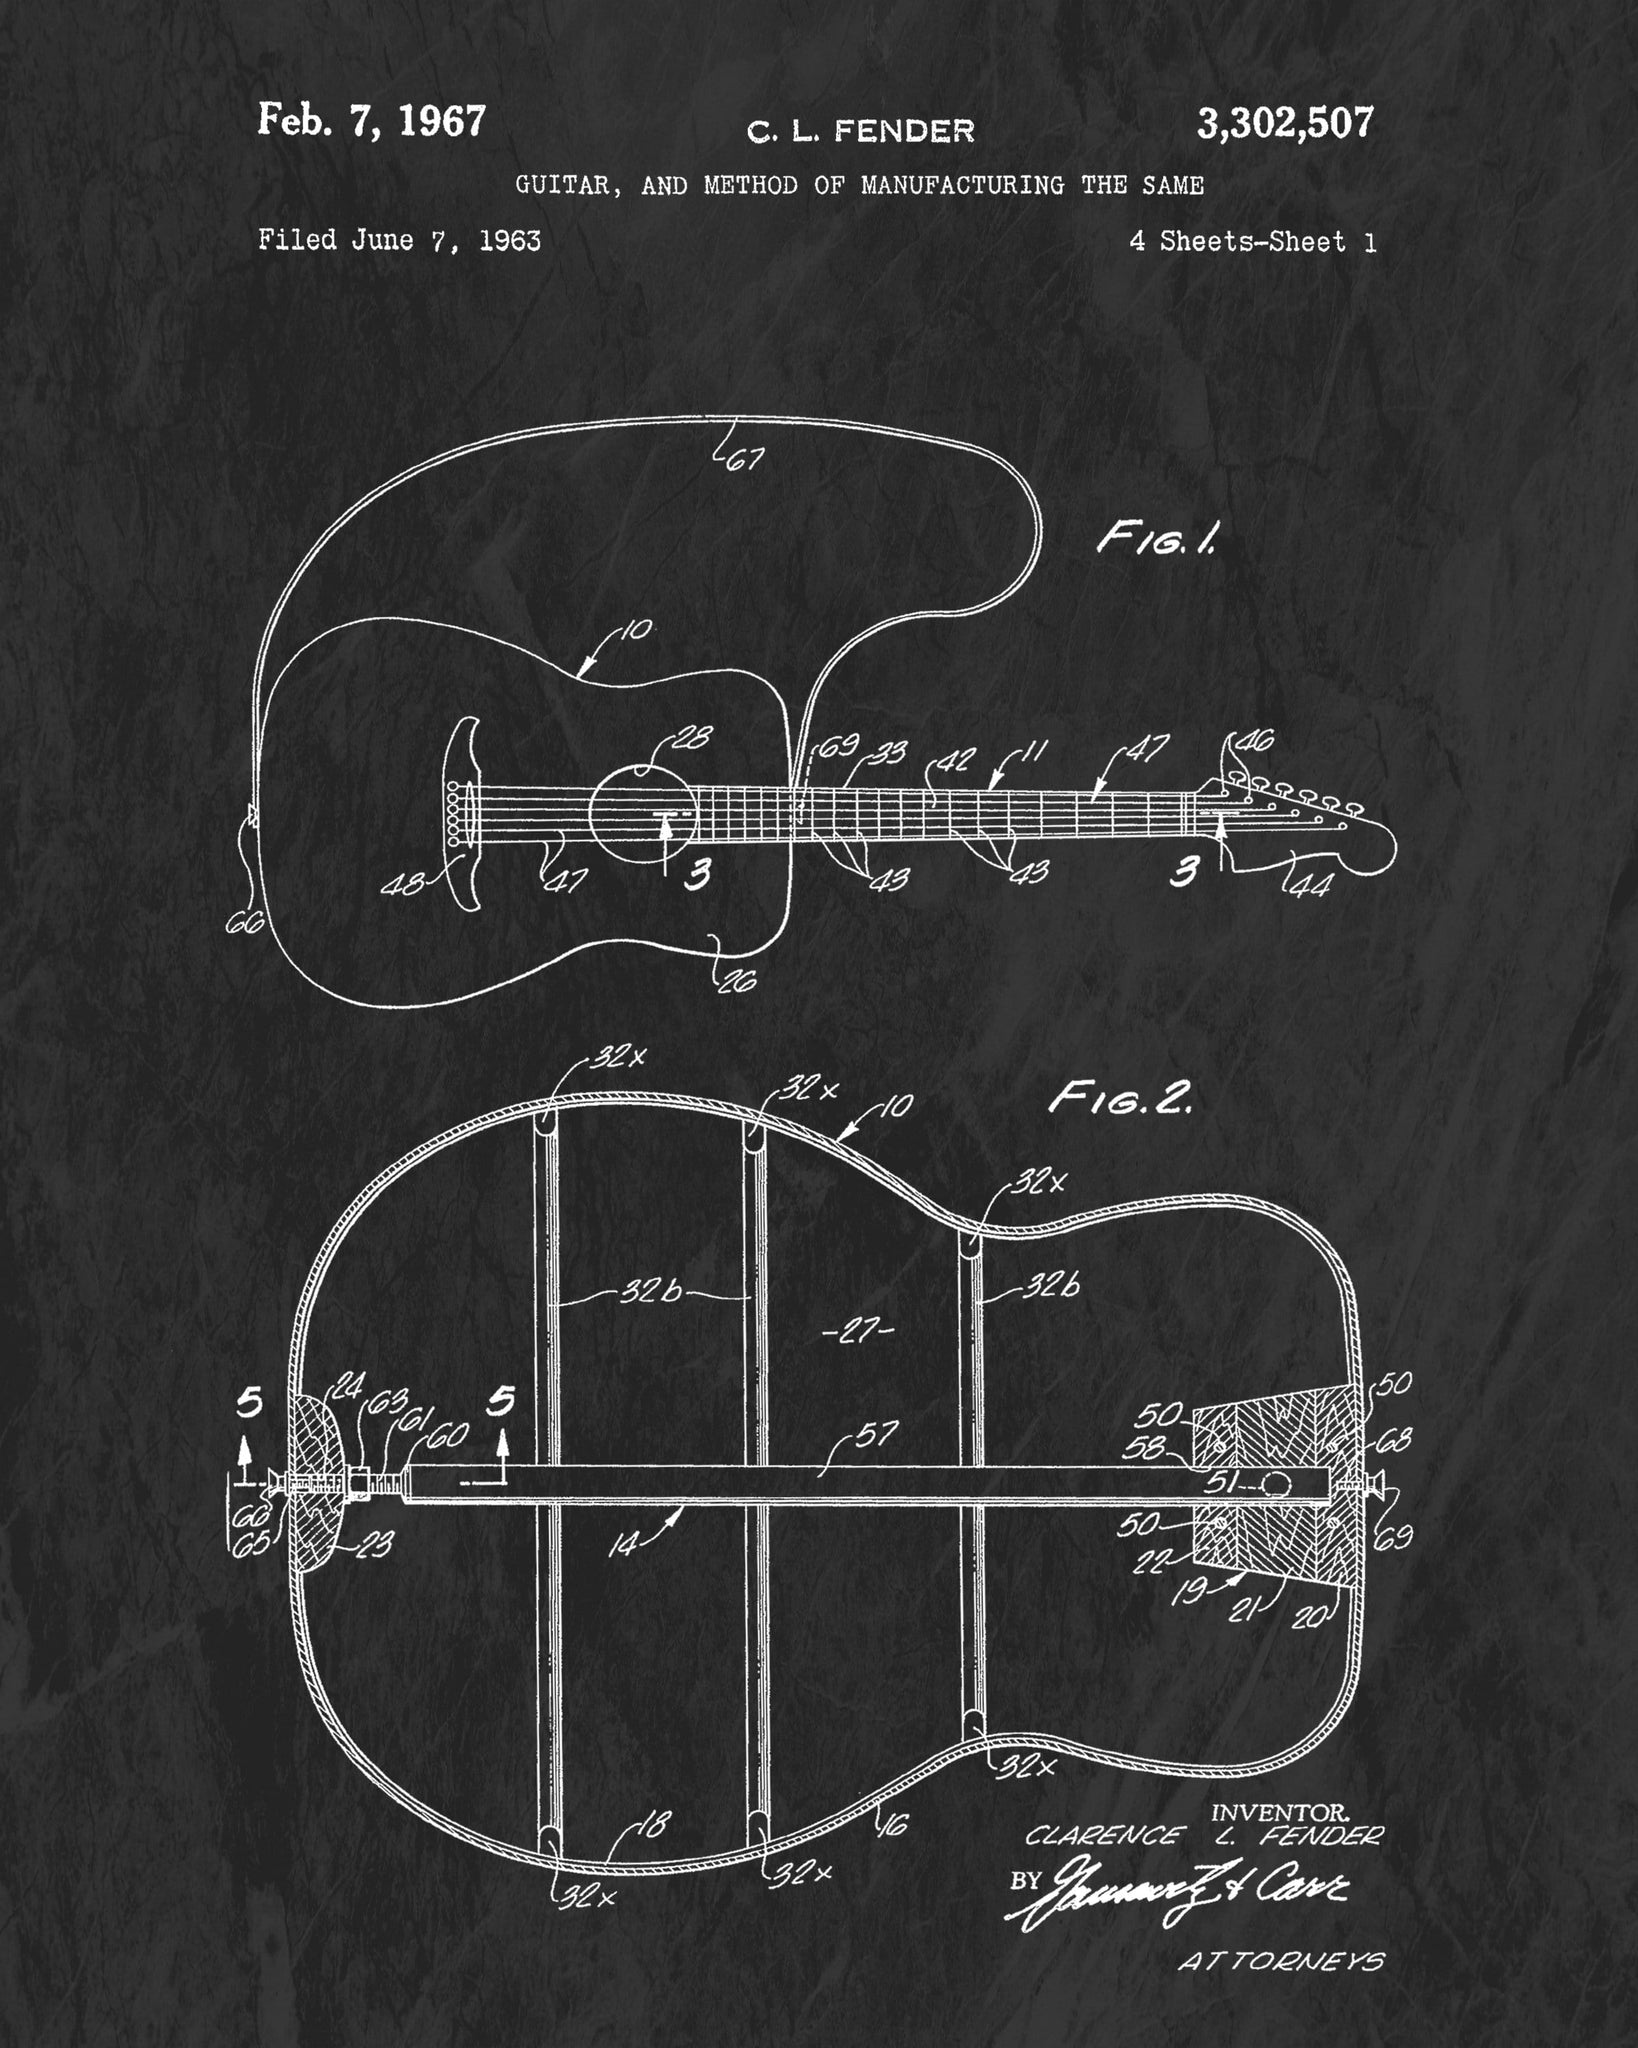 1967 Fender Acoustic Guitar Patent Art Print (Original Title)